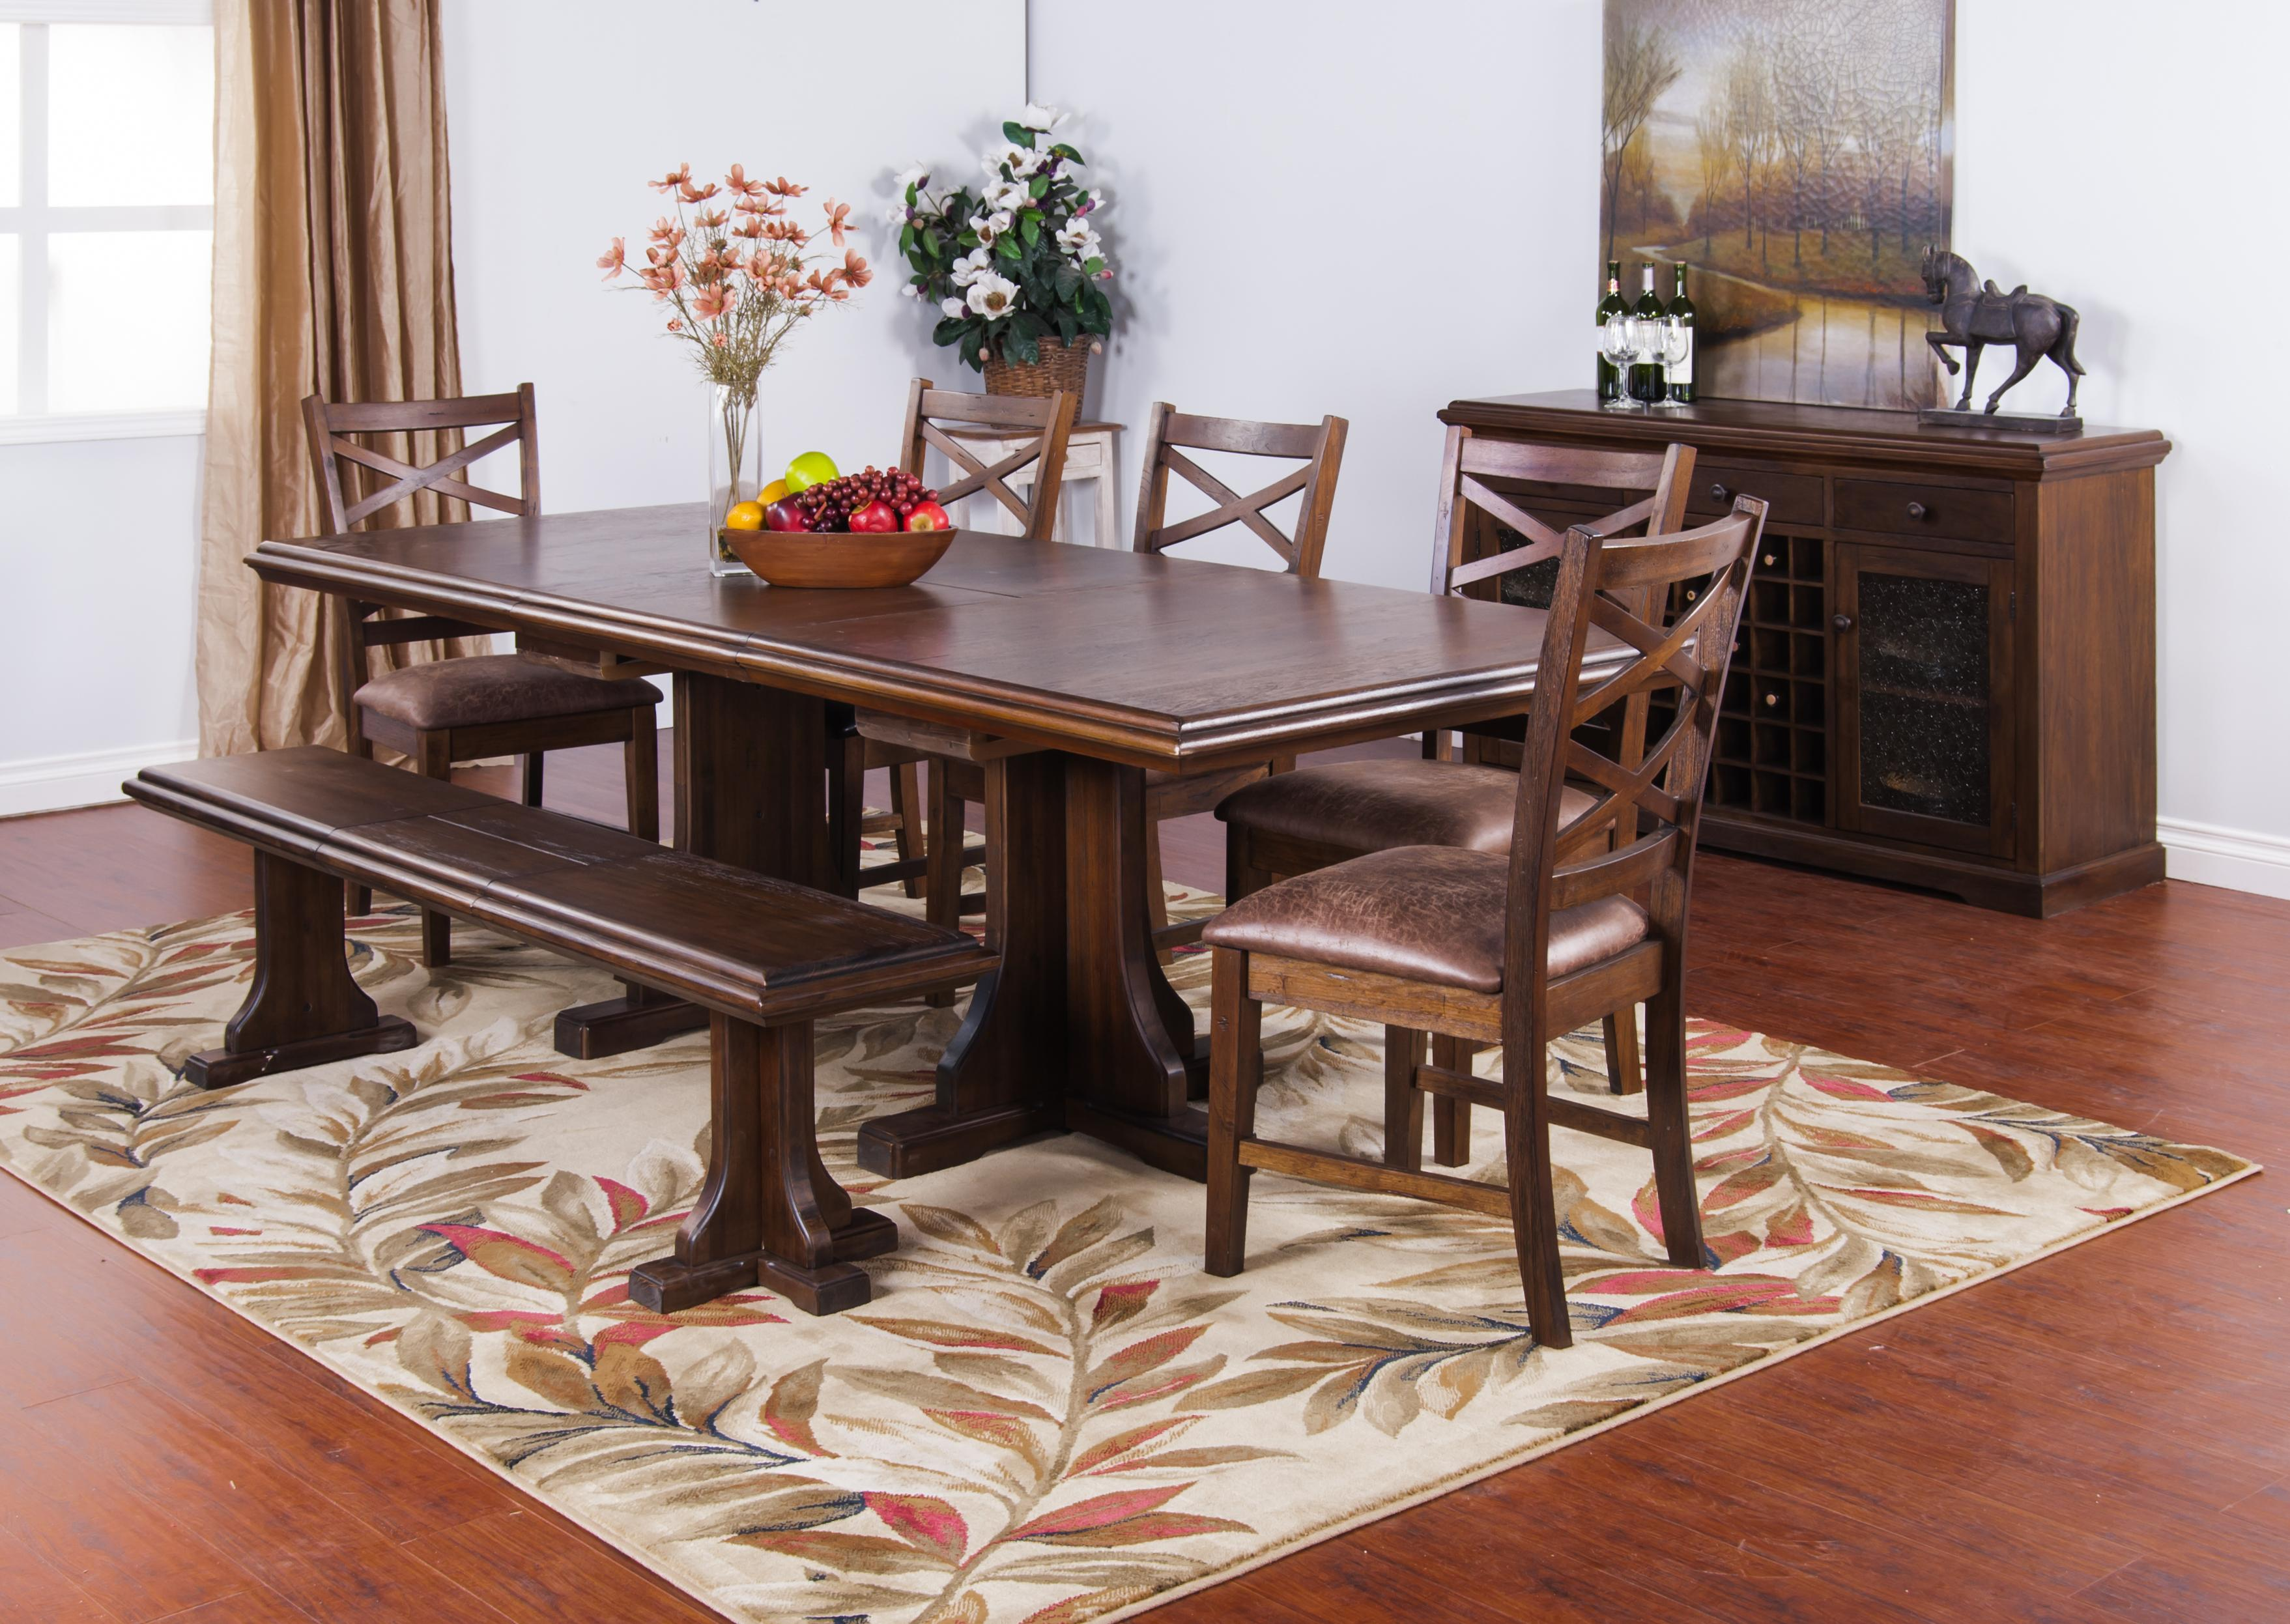 Sunny Designs Savannah Coffee Table with Casters & Decorative